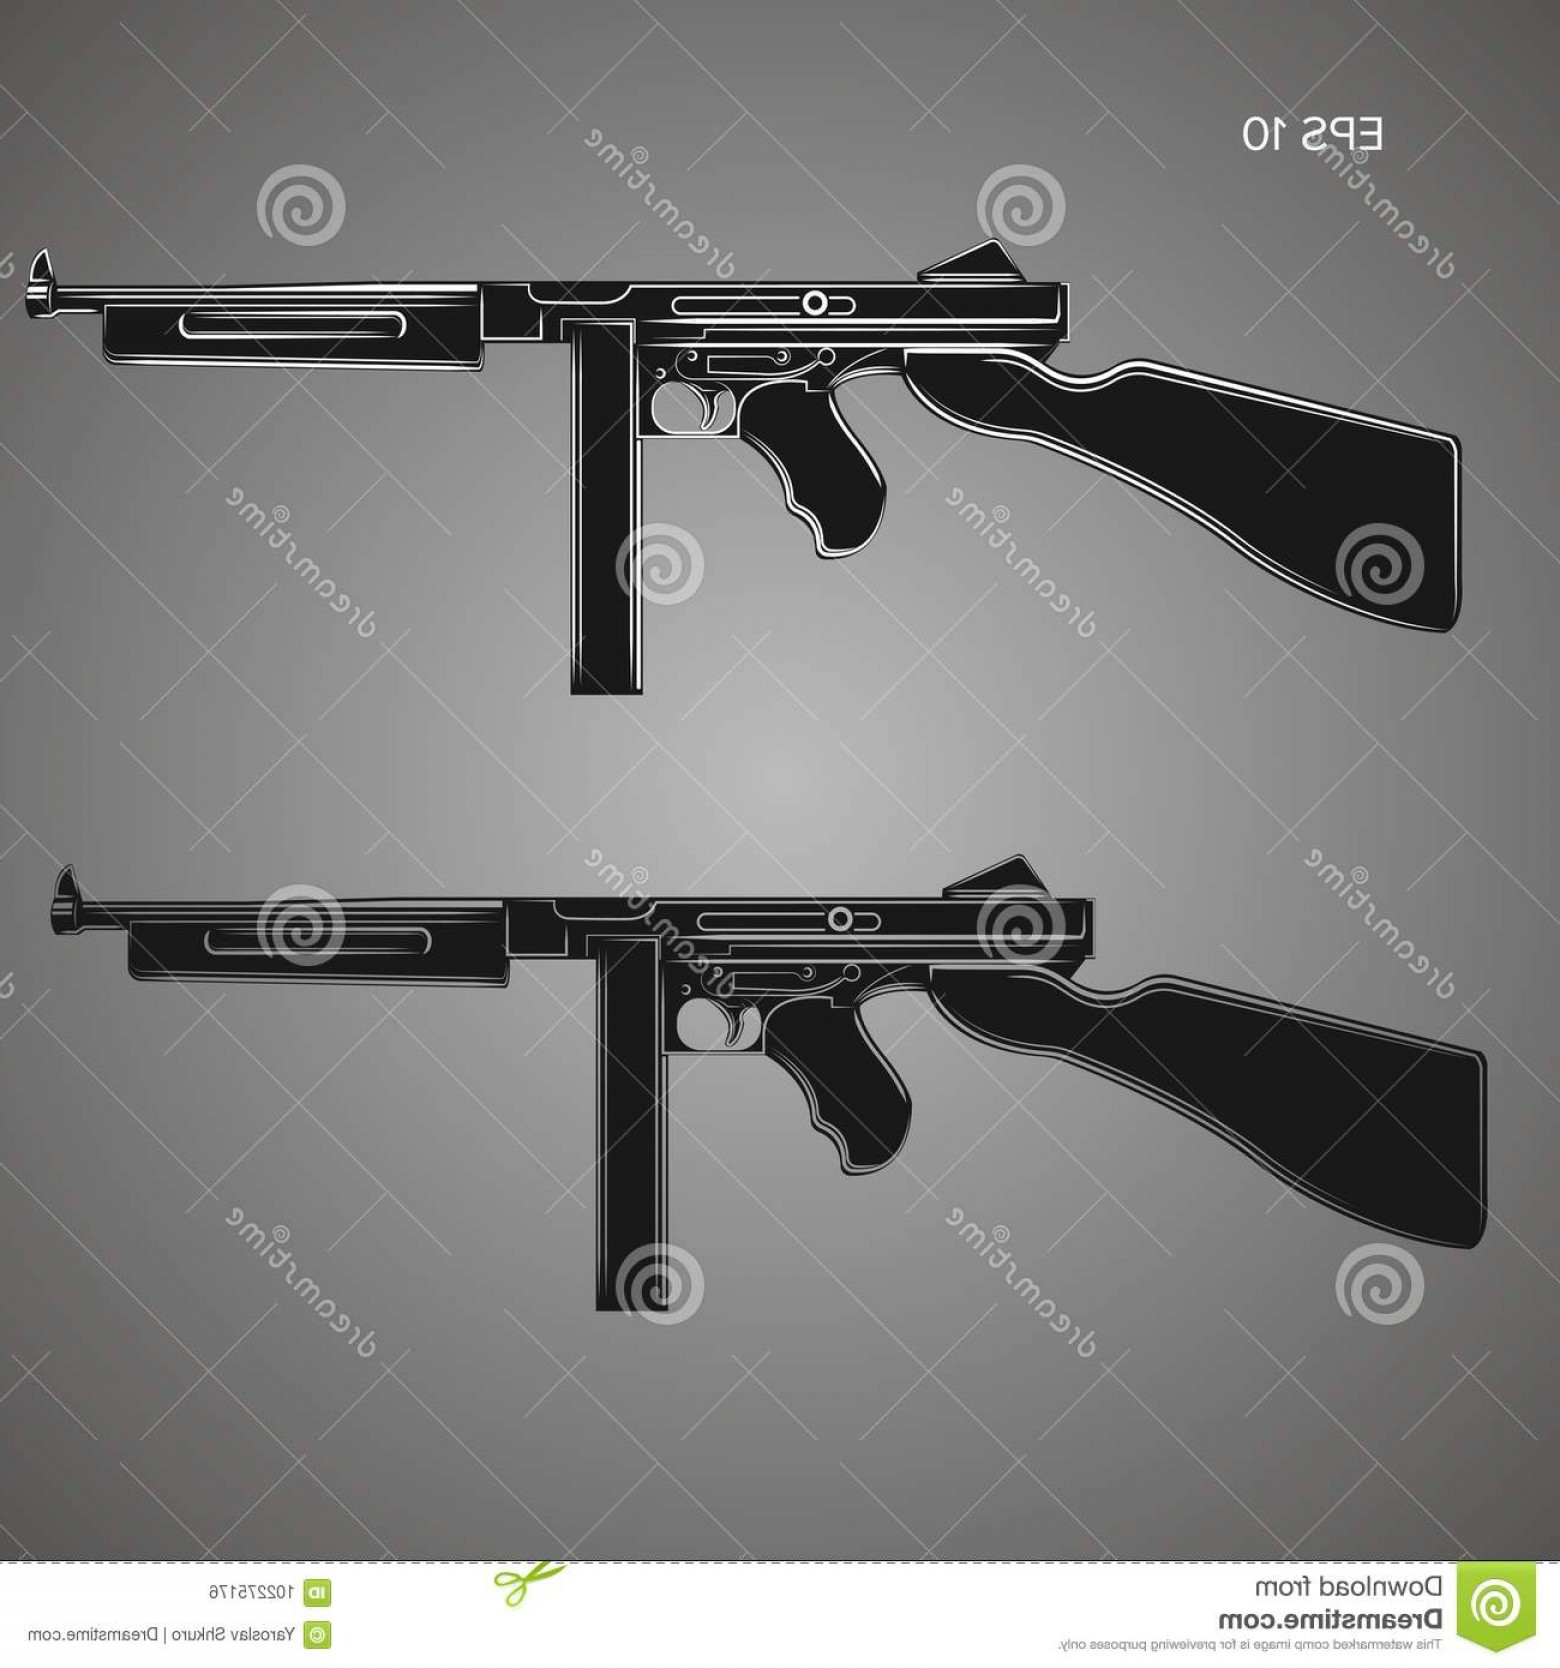 American Gun Vector: Vintage Retro American Sub Machine Gun Vector Illustration Old Famous Gangster Armament Legendary Automatic Weapon Image